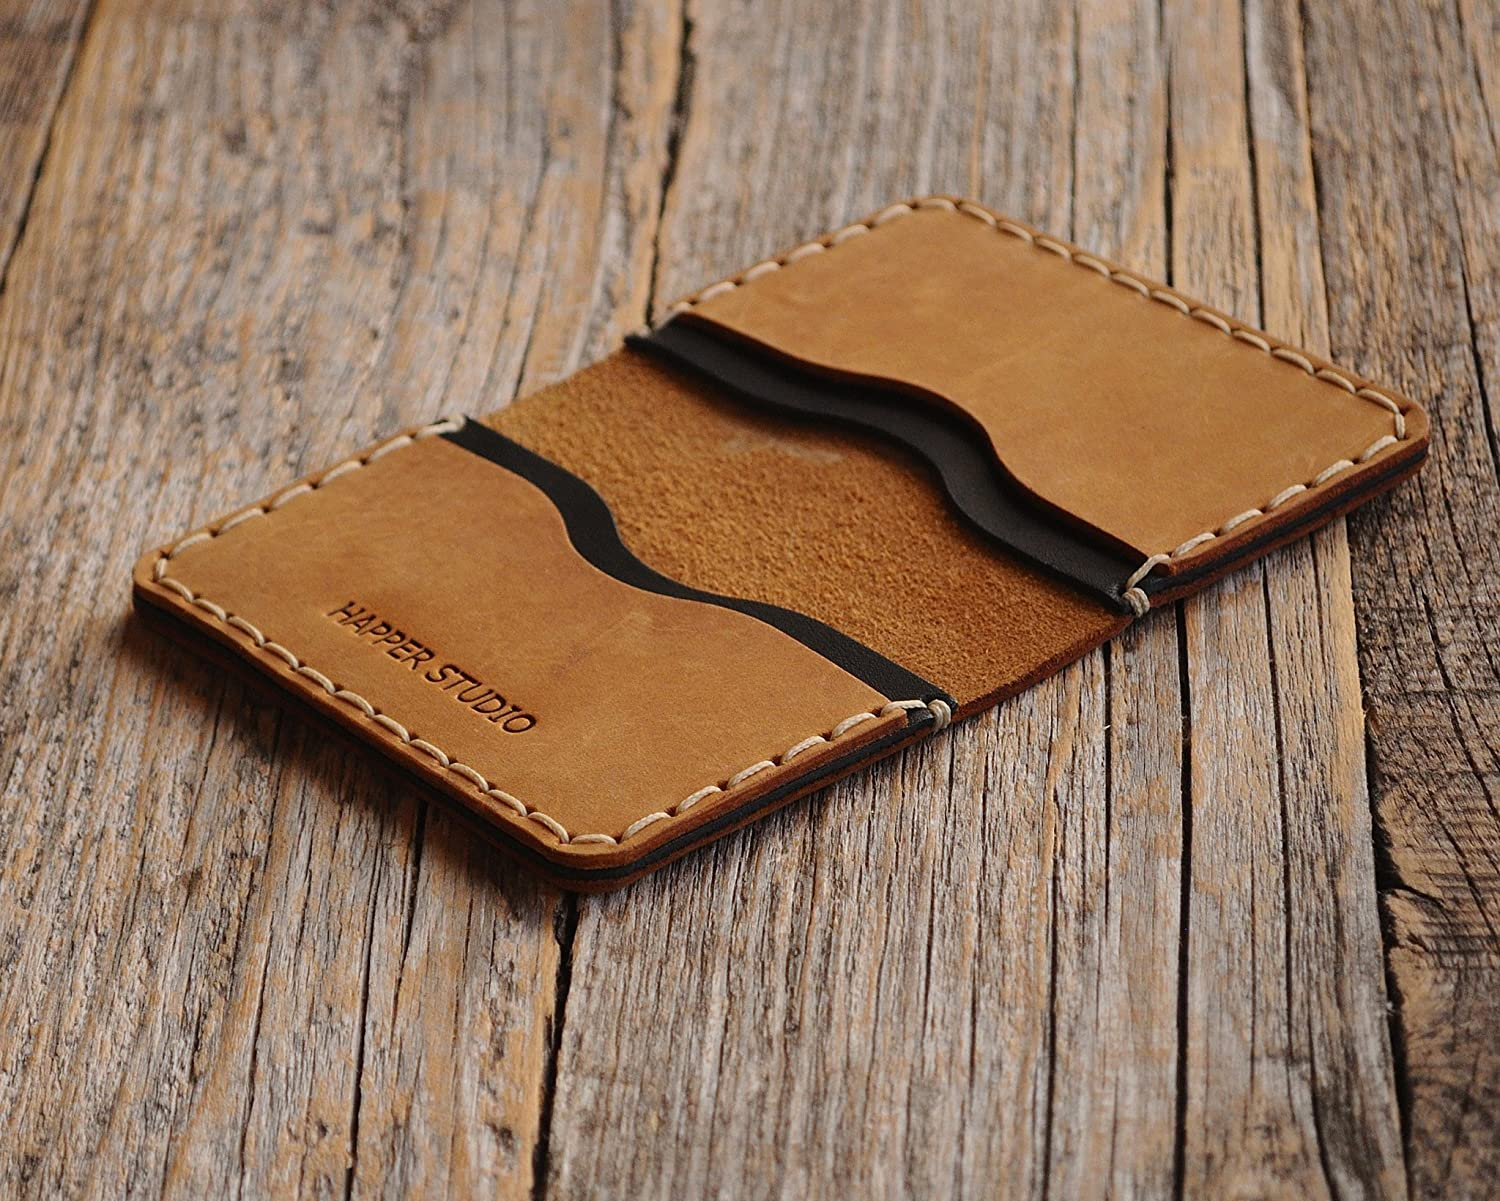 Personalised Leather Wallet. Tan brown and BlackCredit Card, Cash or ID Holder. Rustic Style Unisex Pouch. Monogram your Name or Initials